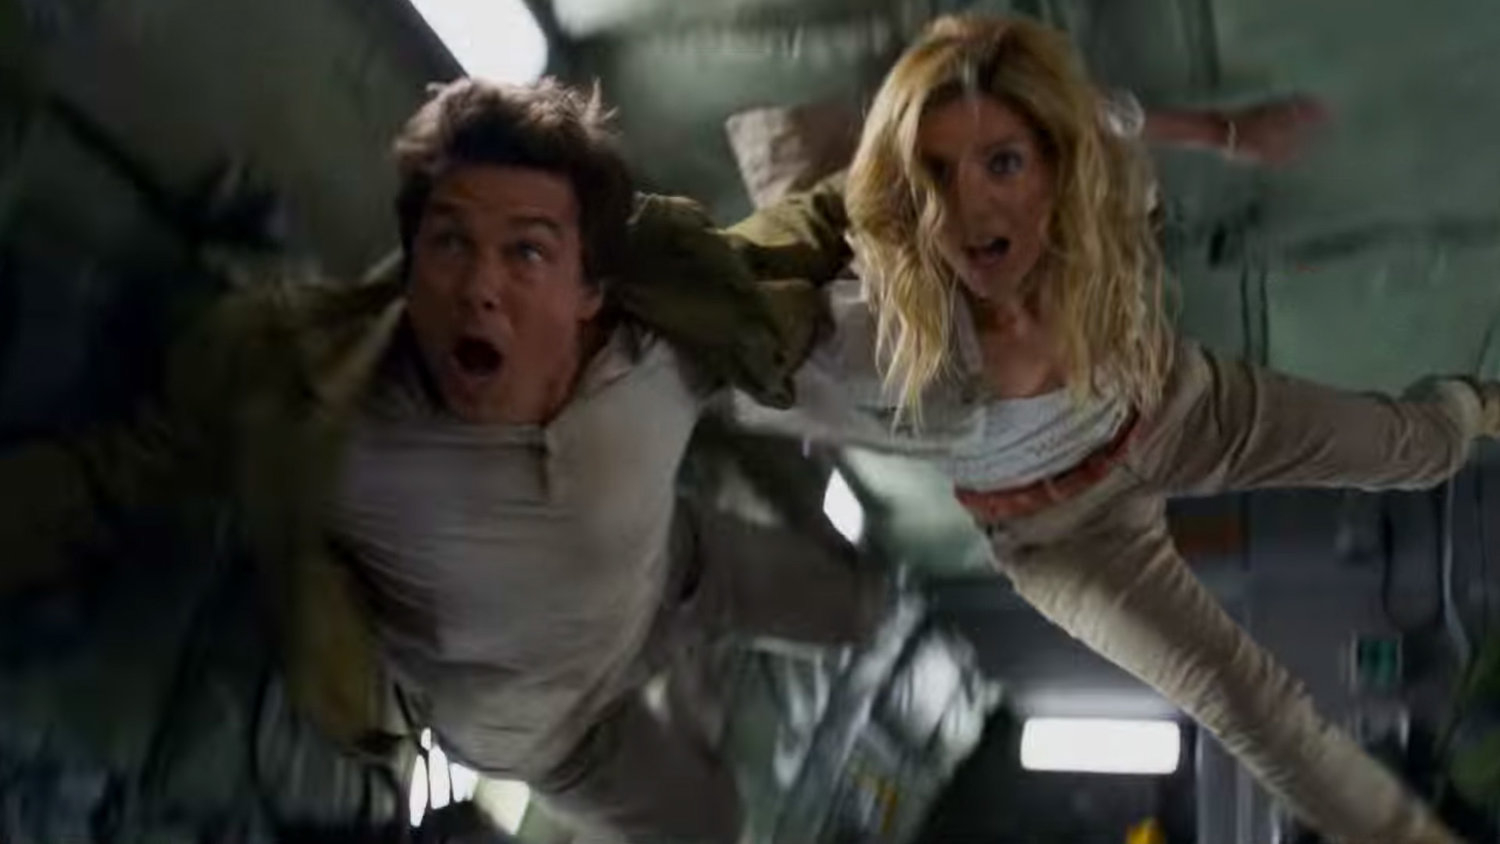 THE MUMMY Featurette Takes Us Behind the Scenes of the Zero G Plane Crash